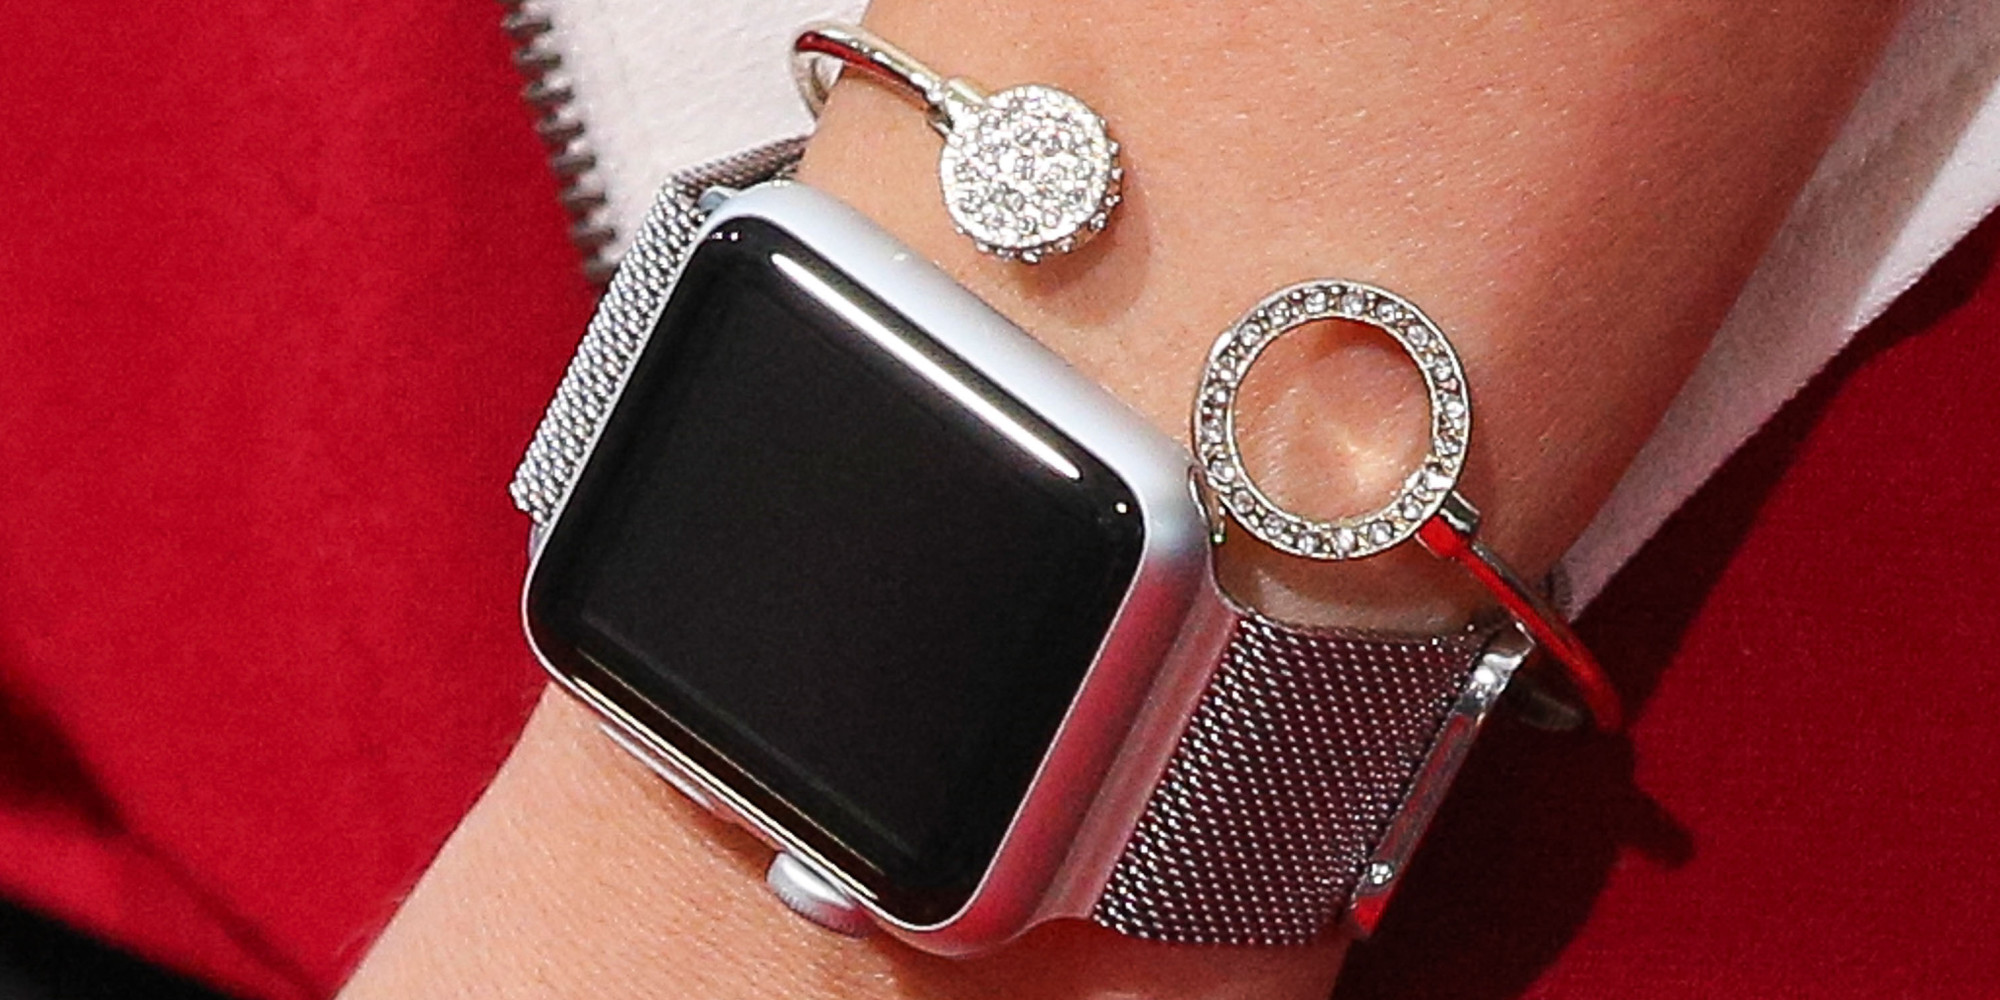 Why The Apple Watch Is A Fashion Girl\'s Dream And Nightmare | HuffPost